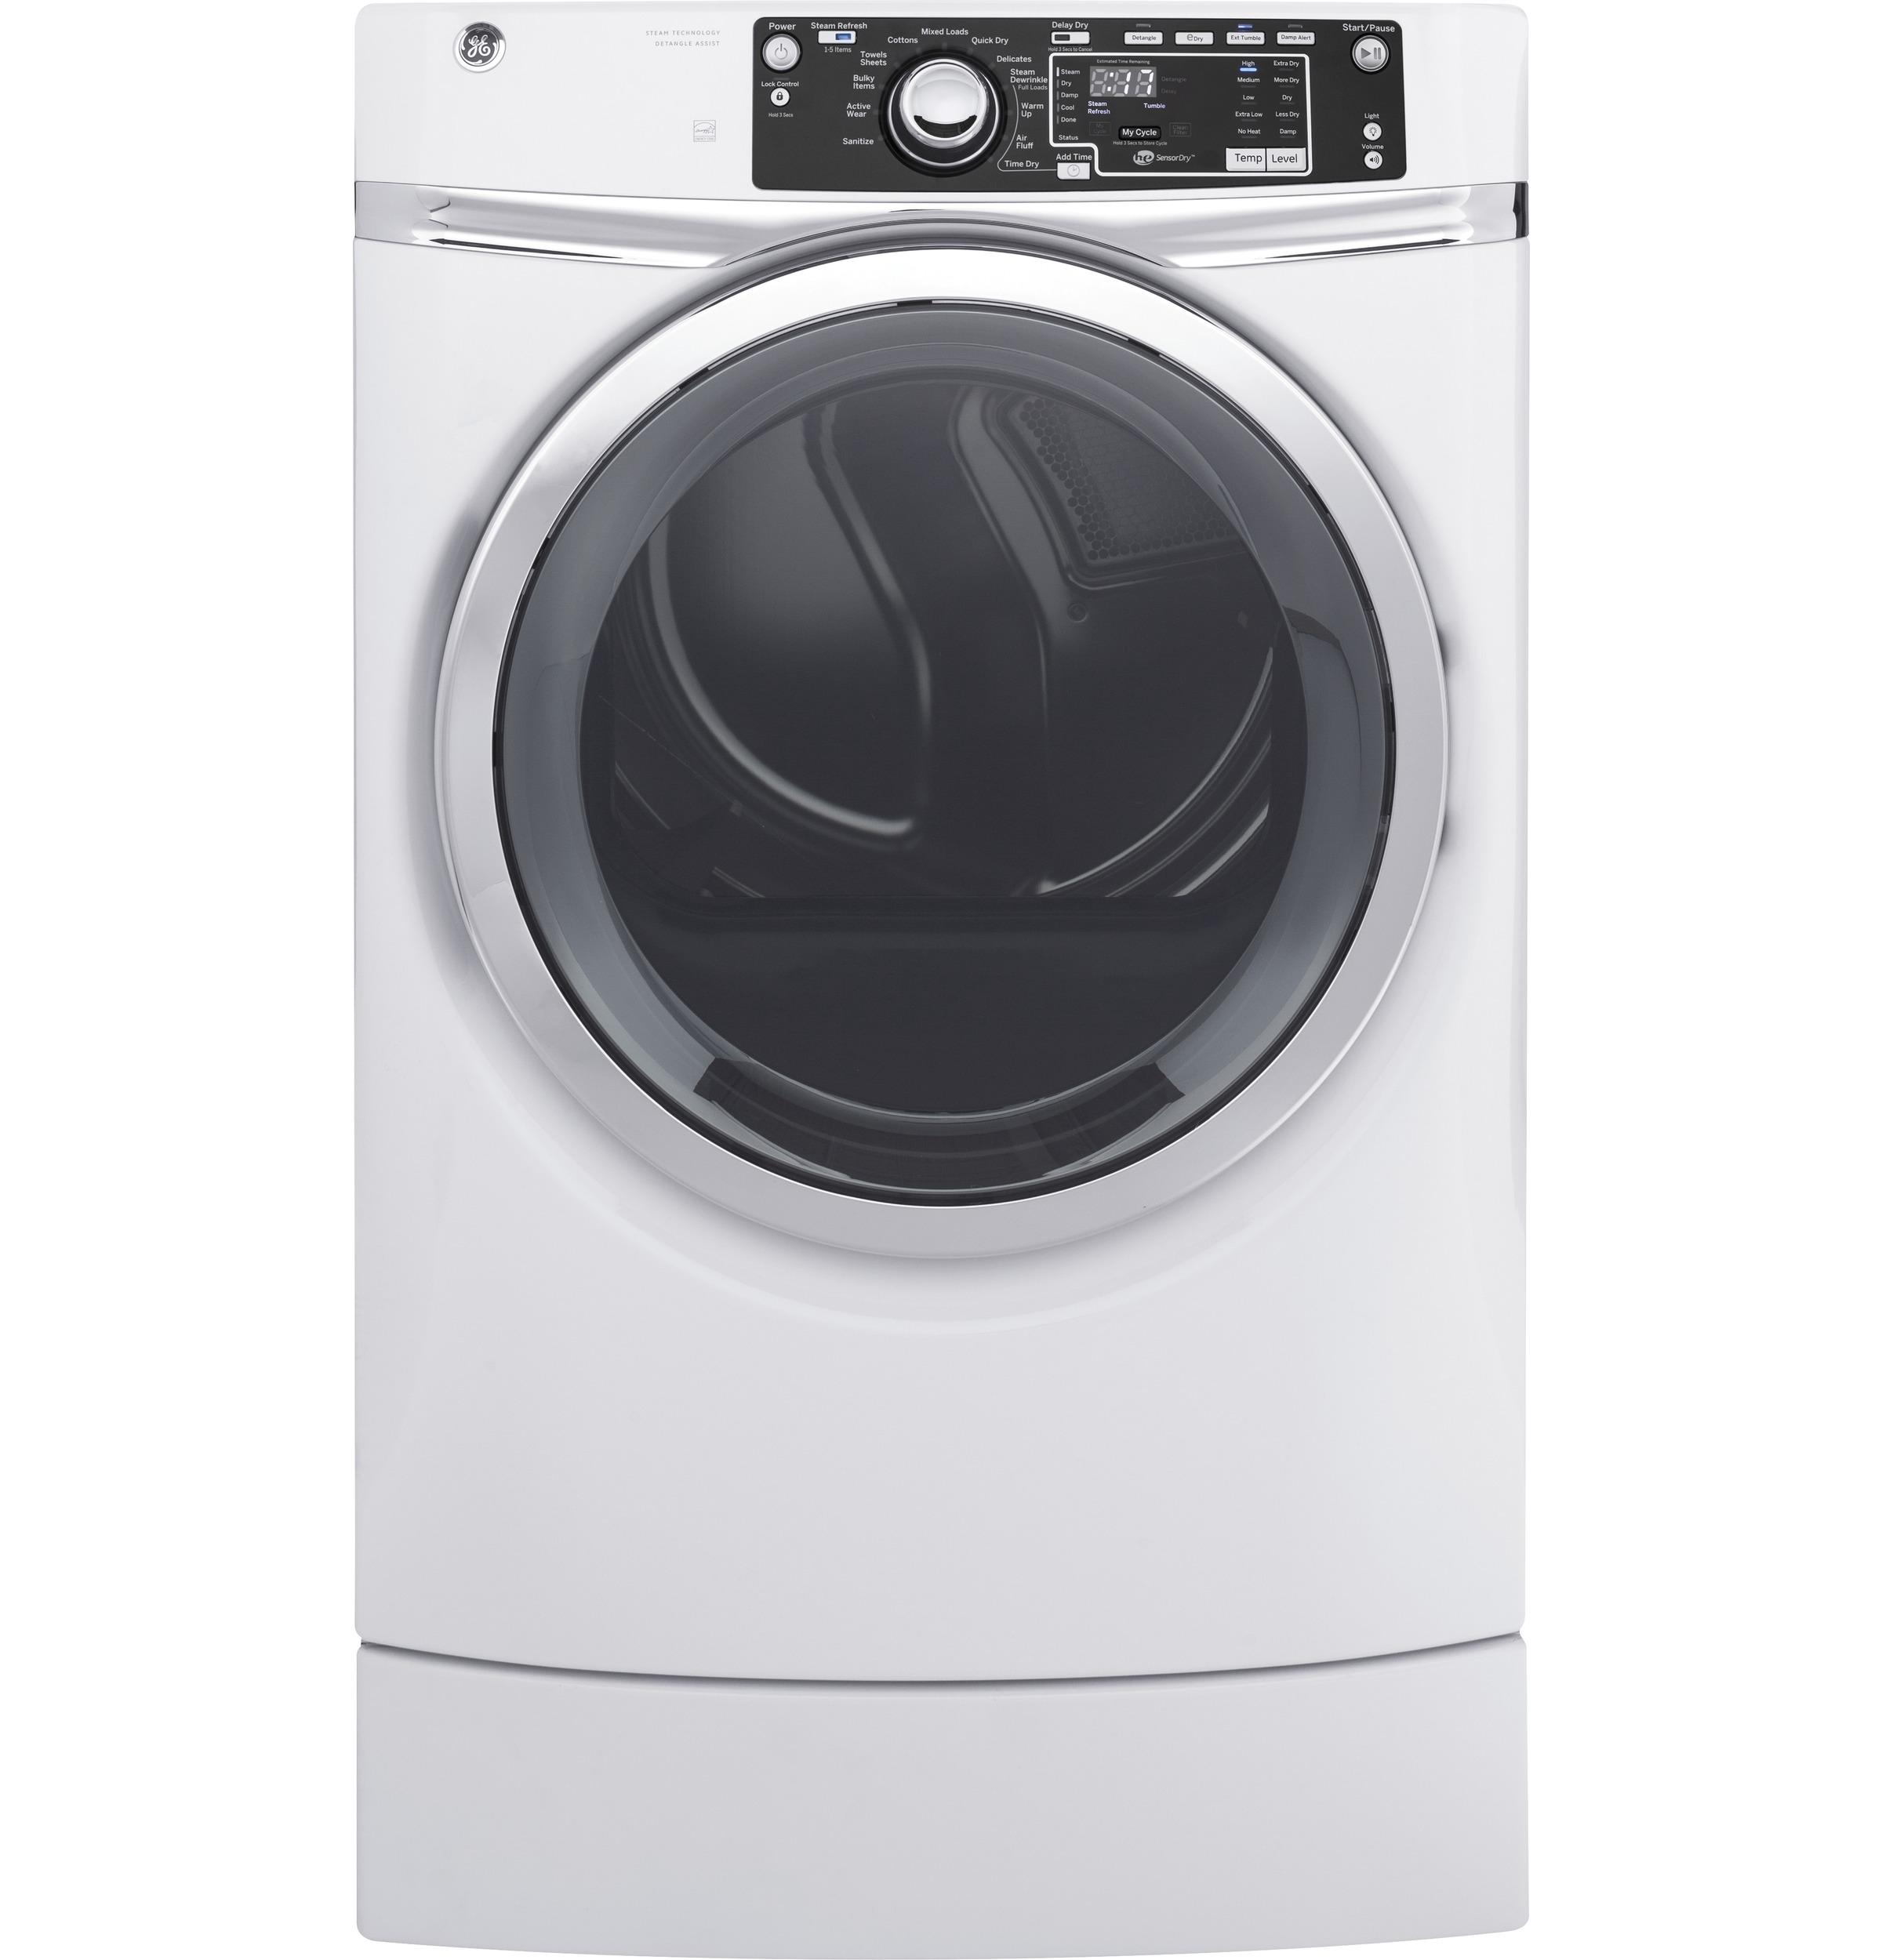 GE(R) 8.3 cu. ft. capacity RightHeight(TM) Design Front Load gas ENERGY STAR(R) dryer with steam